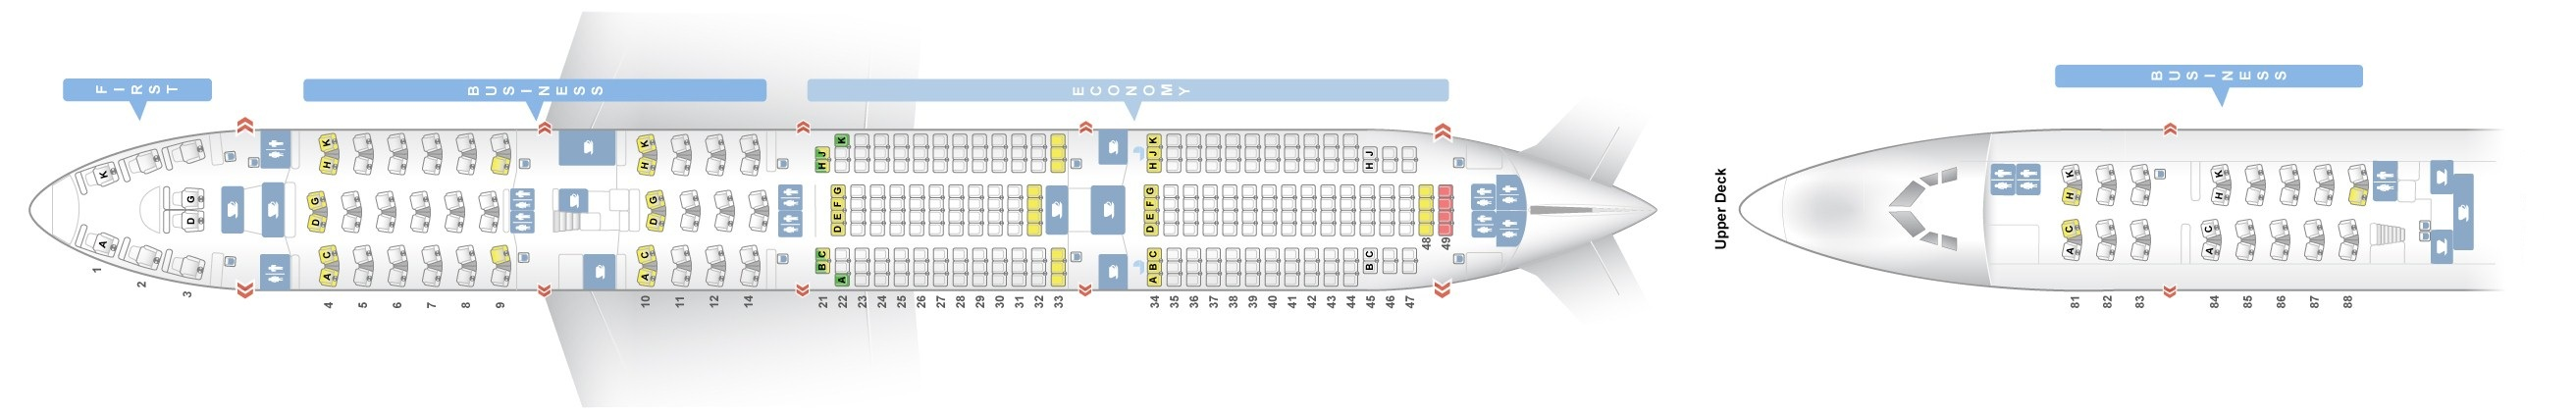 seat map boeing 747 800 lufthansa best seats in plane